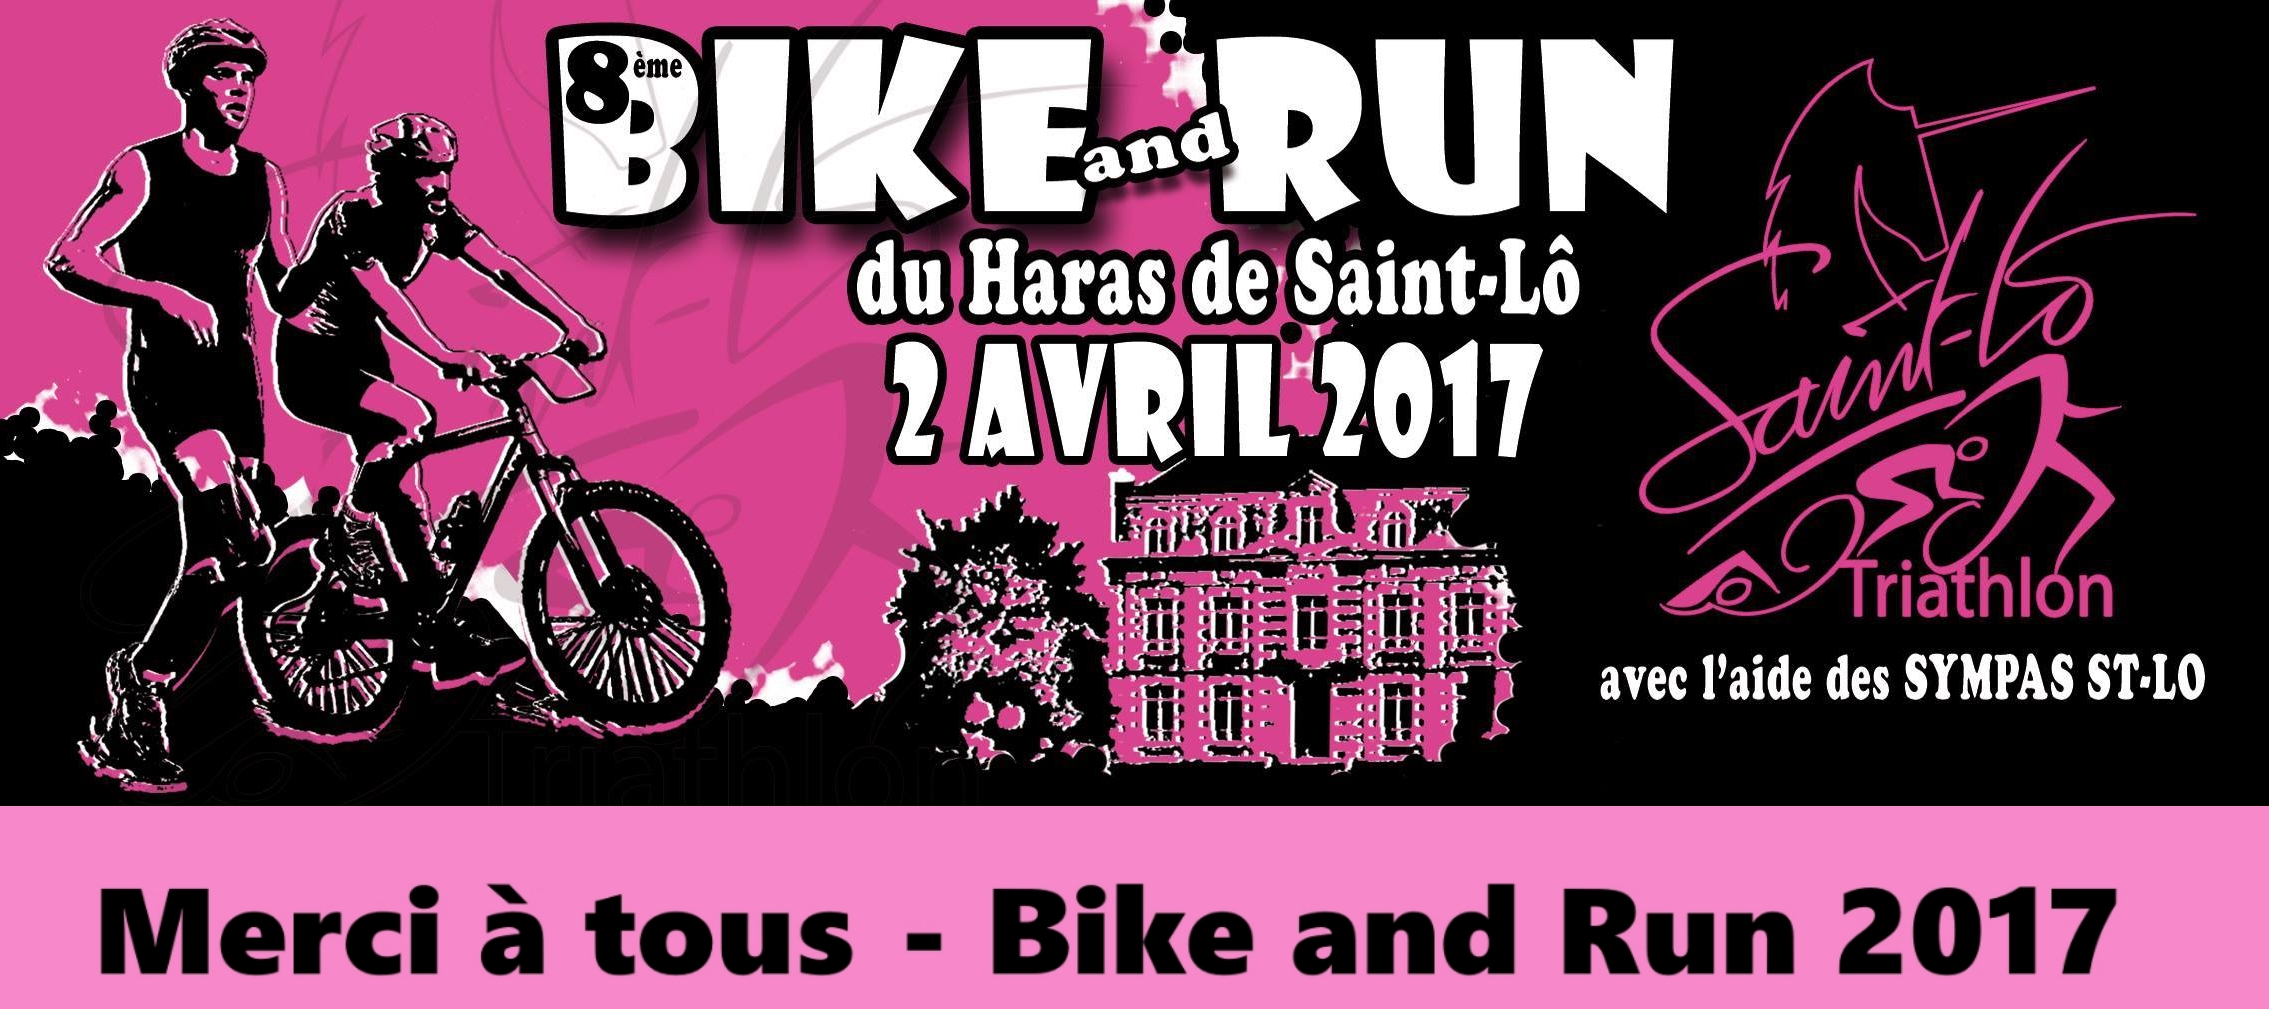 Bike and Run 2017 : Remerciements et photos !